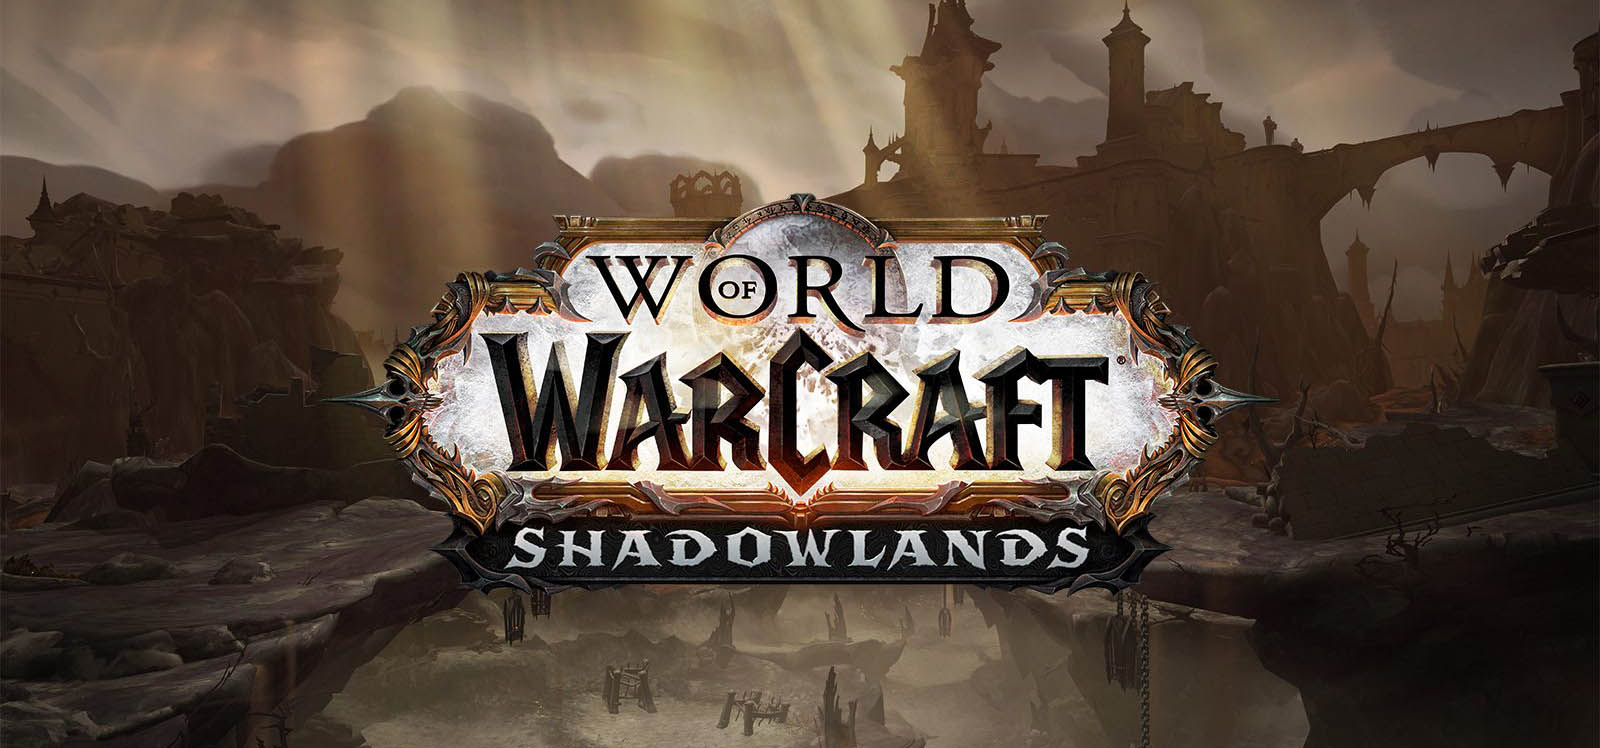 World of Warcraft WoW Shadowlands